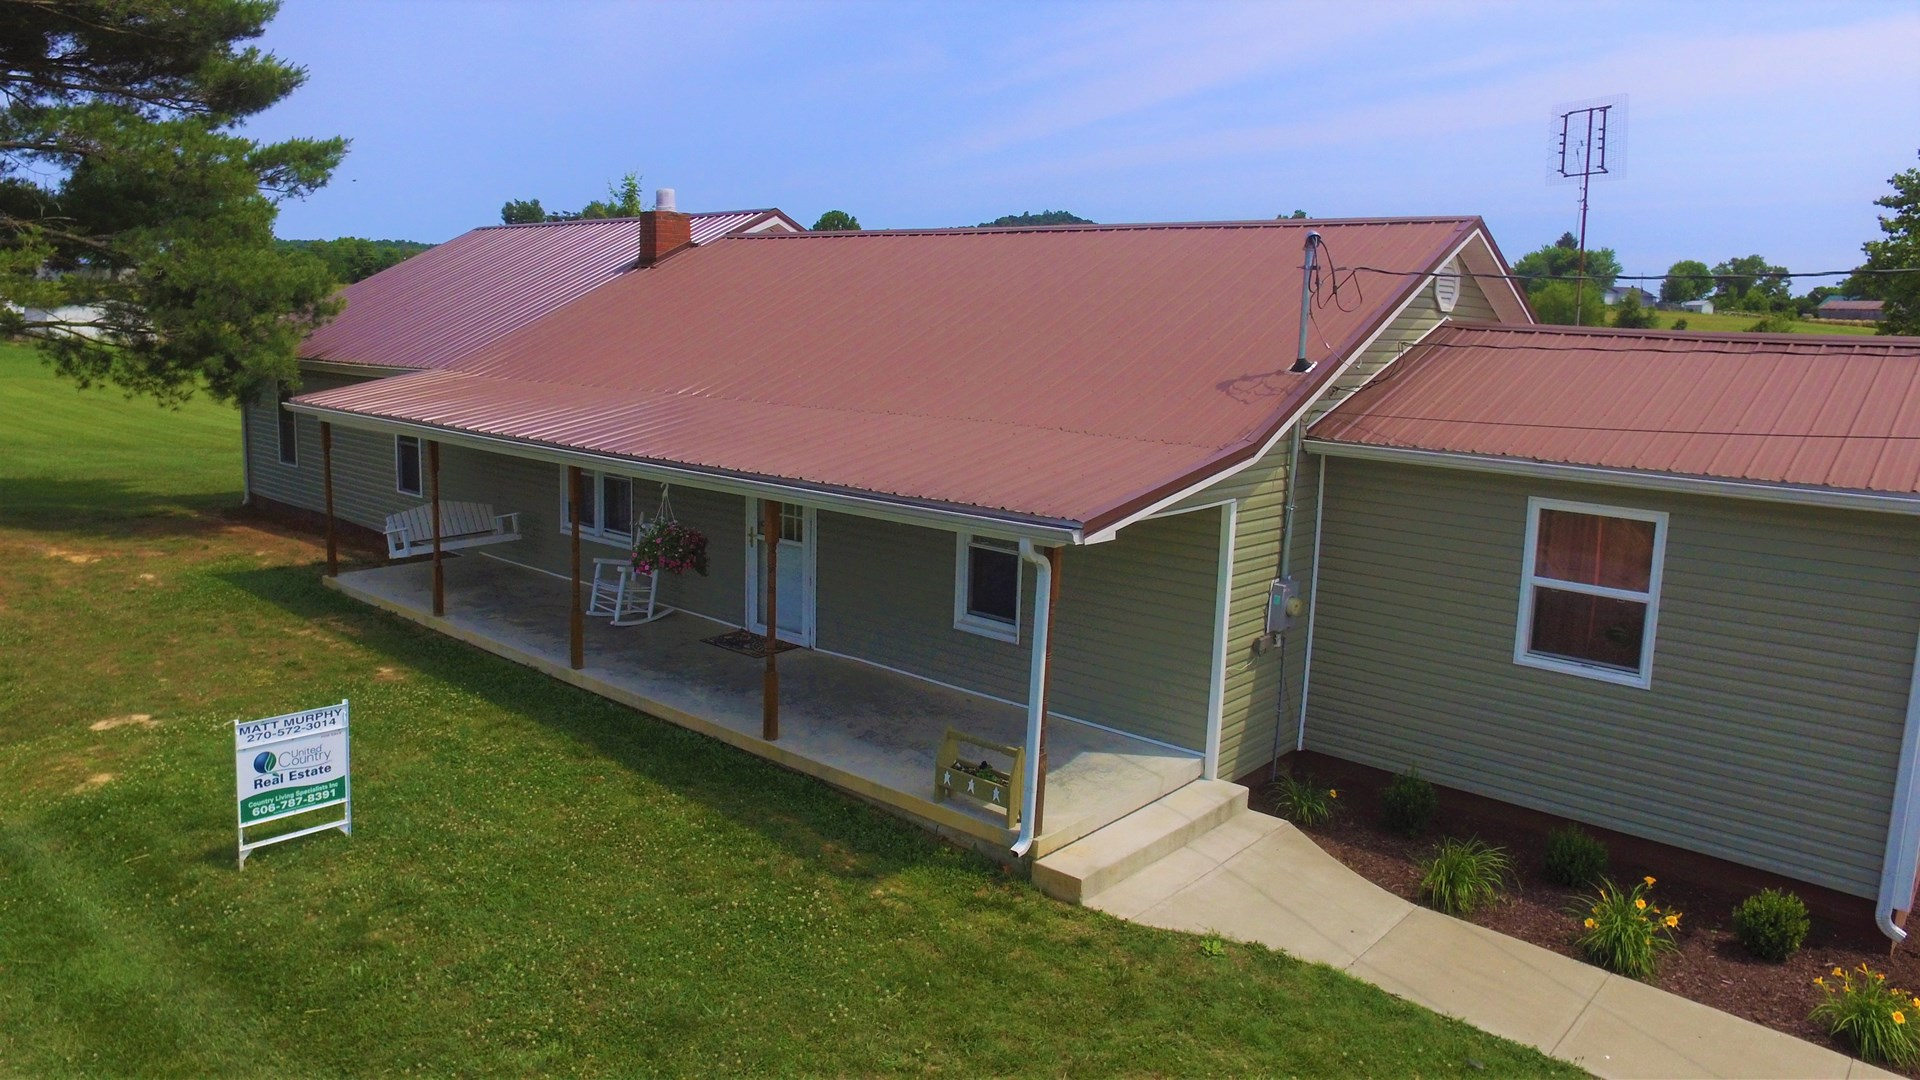 4 BEDROOM HOME-GARAGE-ADDITIONAL AC. AVAIL. - LIBERTY , KY.